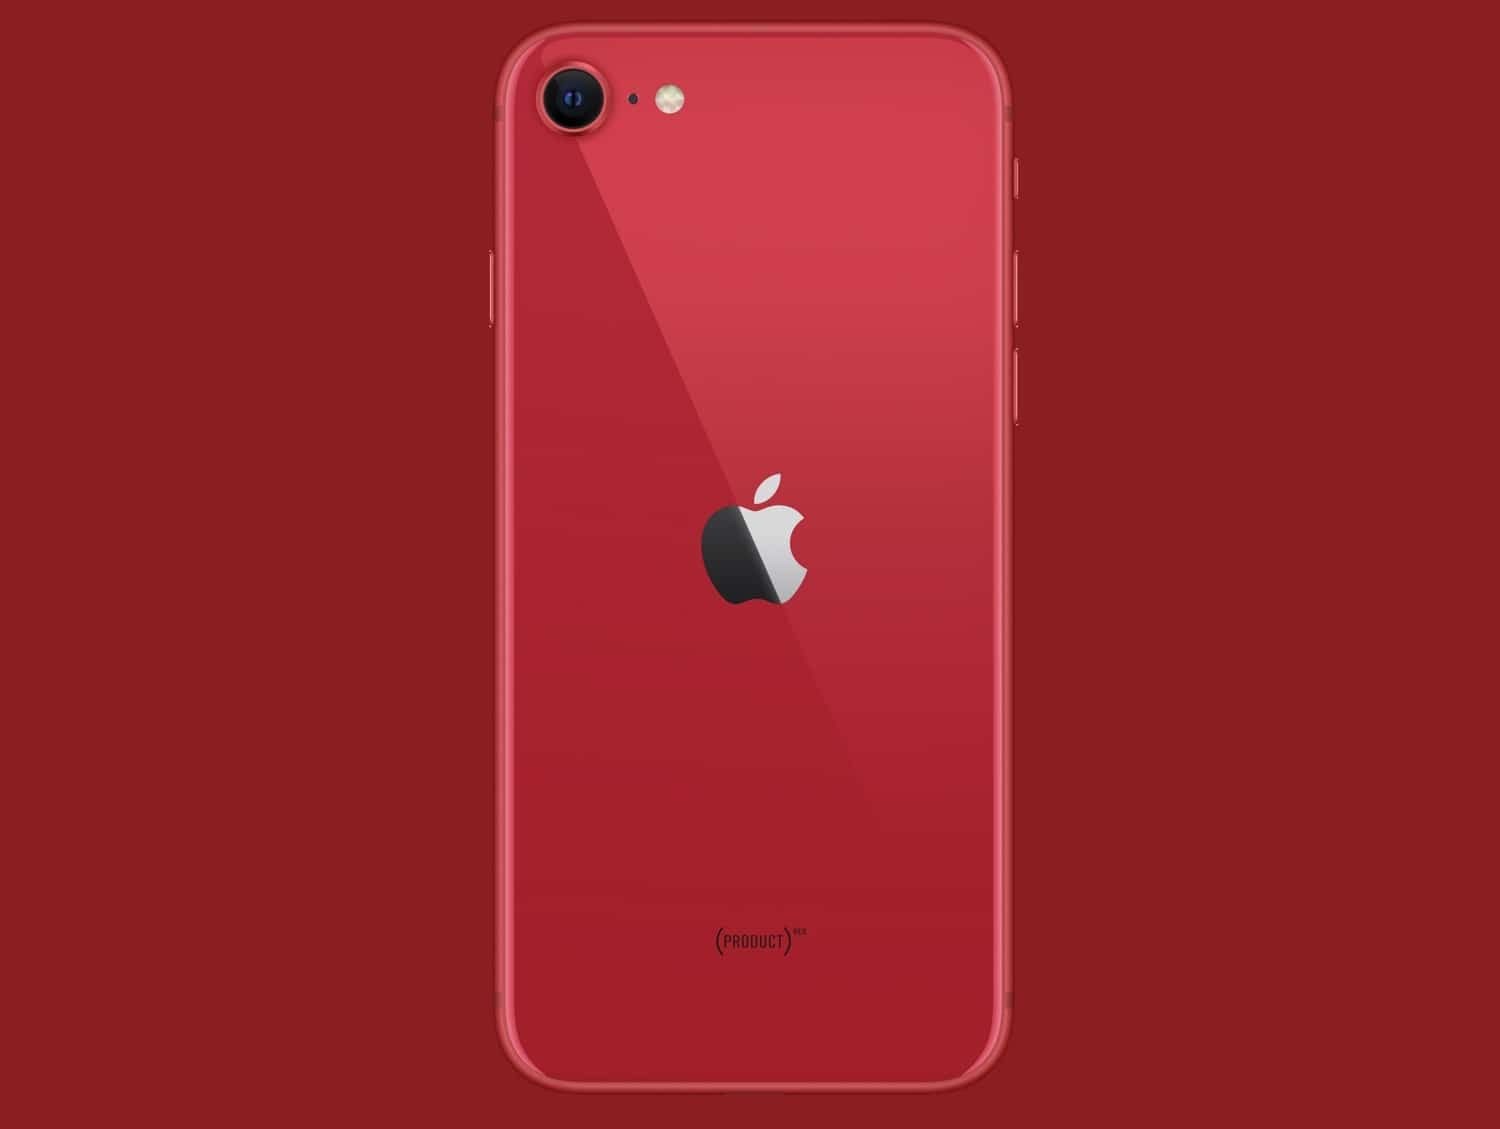 iphone se 2020 design